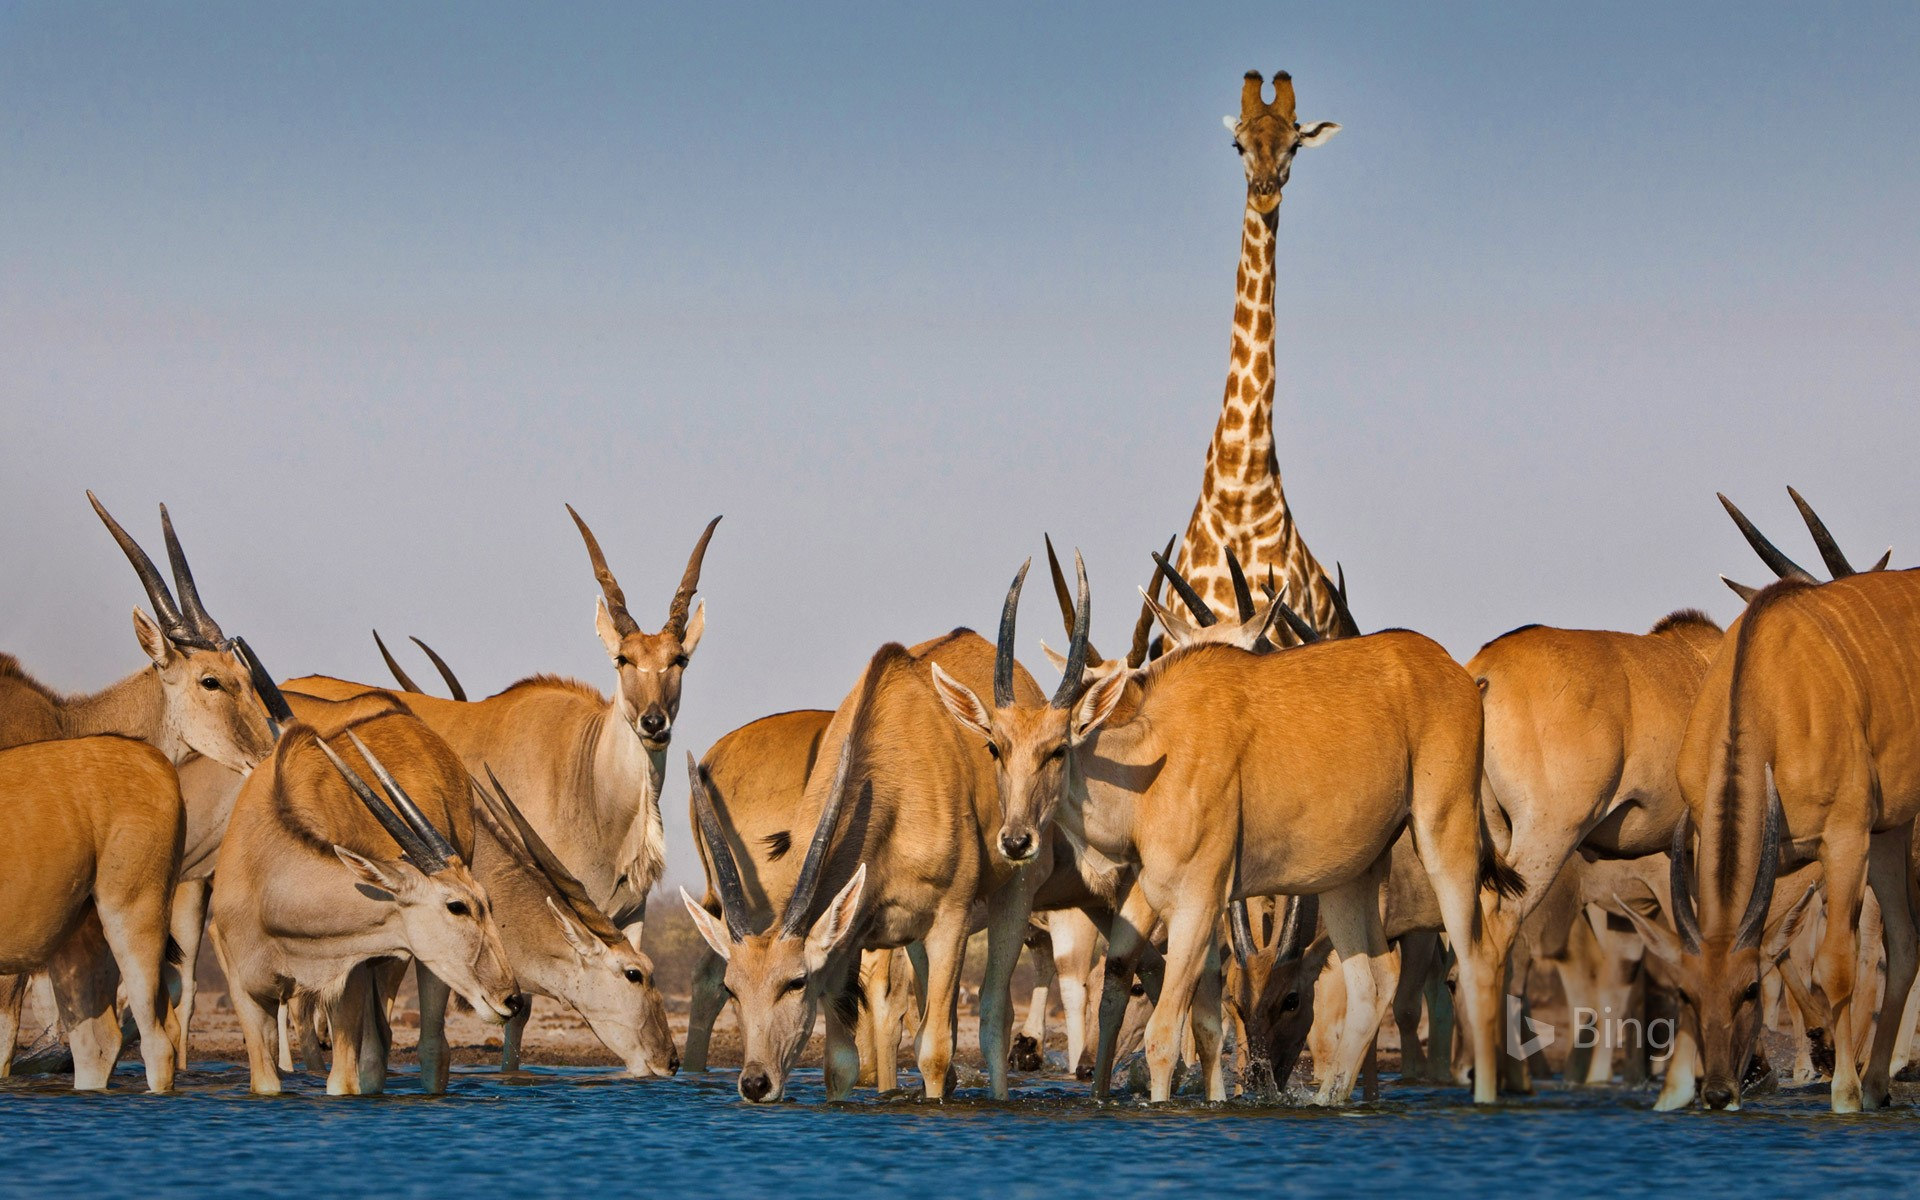 Eland antelope and giraffe at Etosha National Park, Namibia